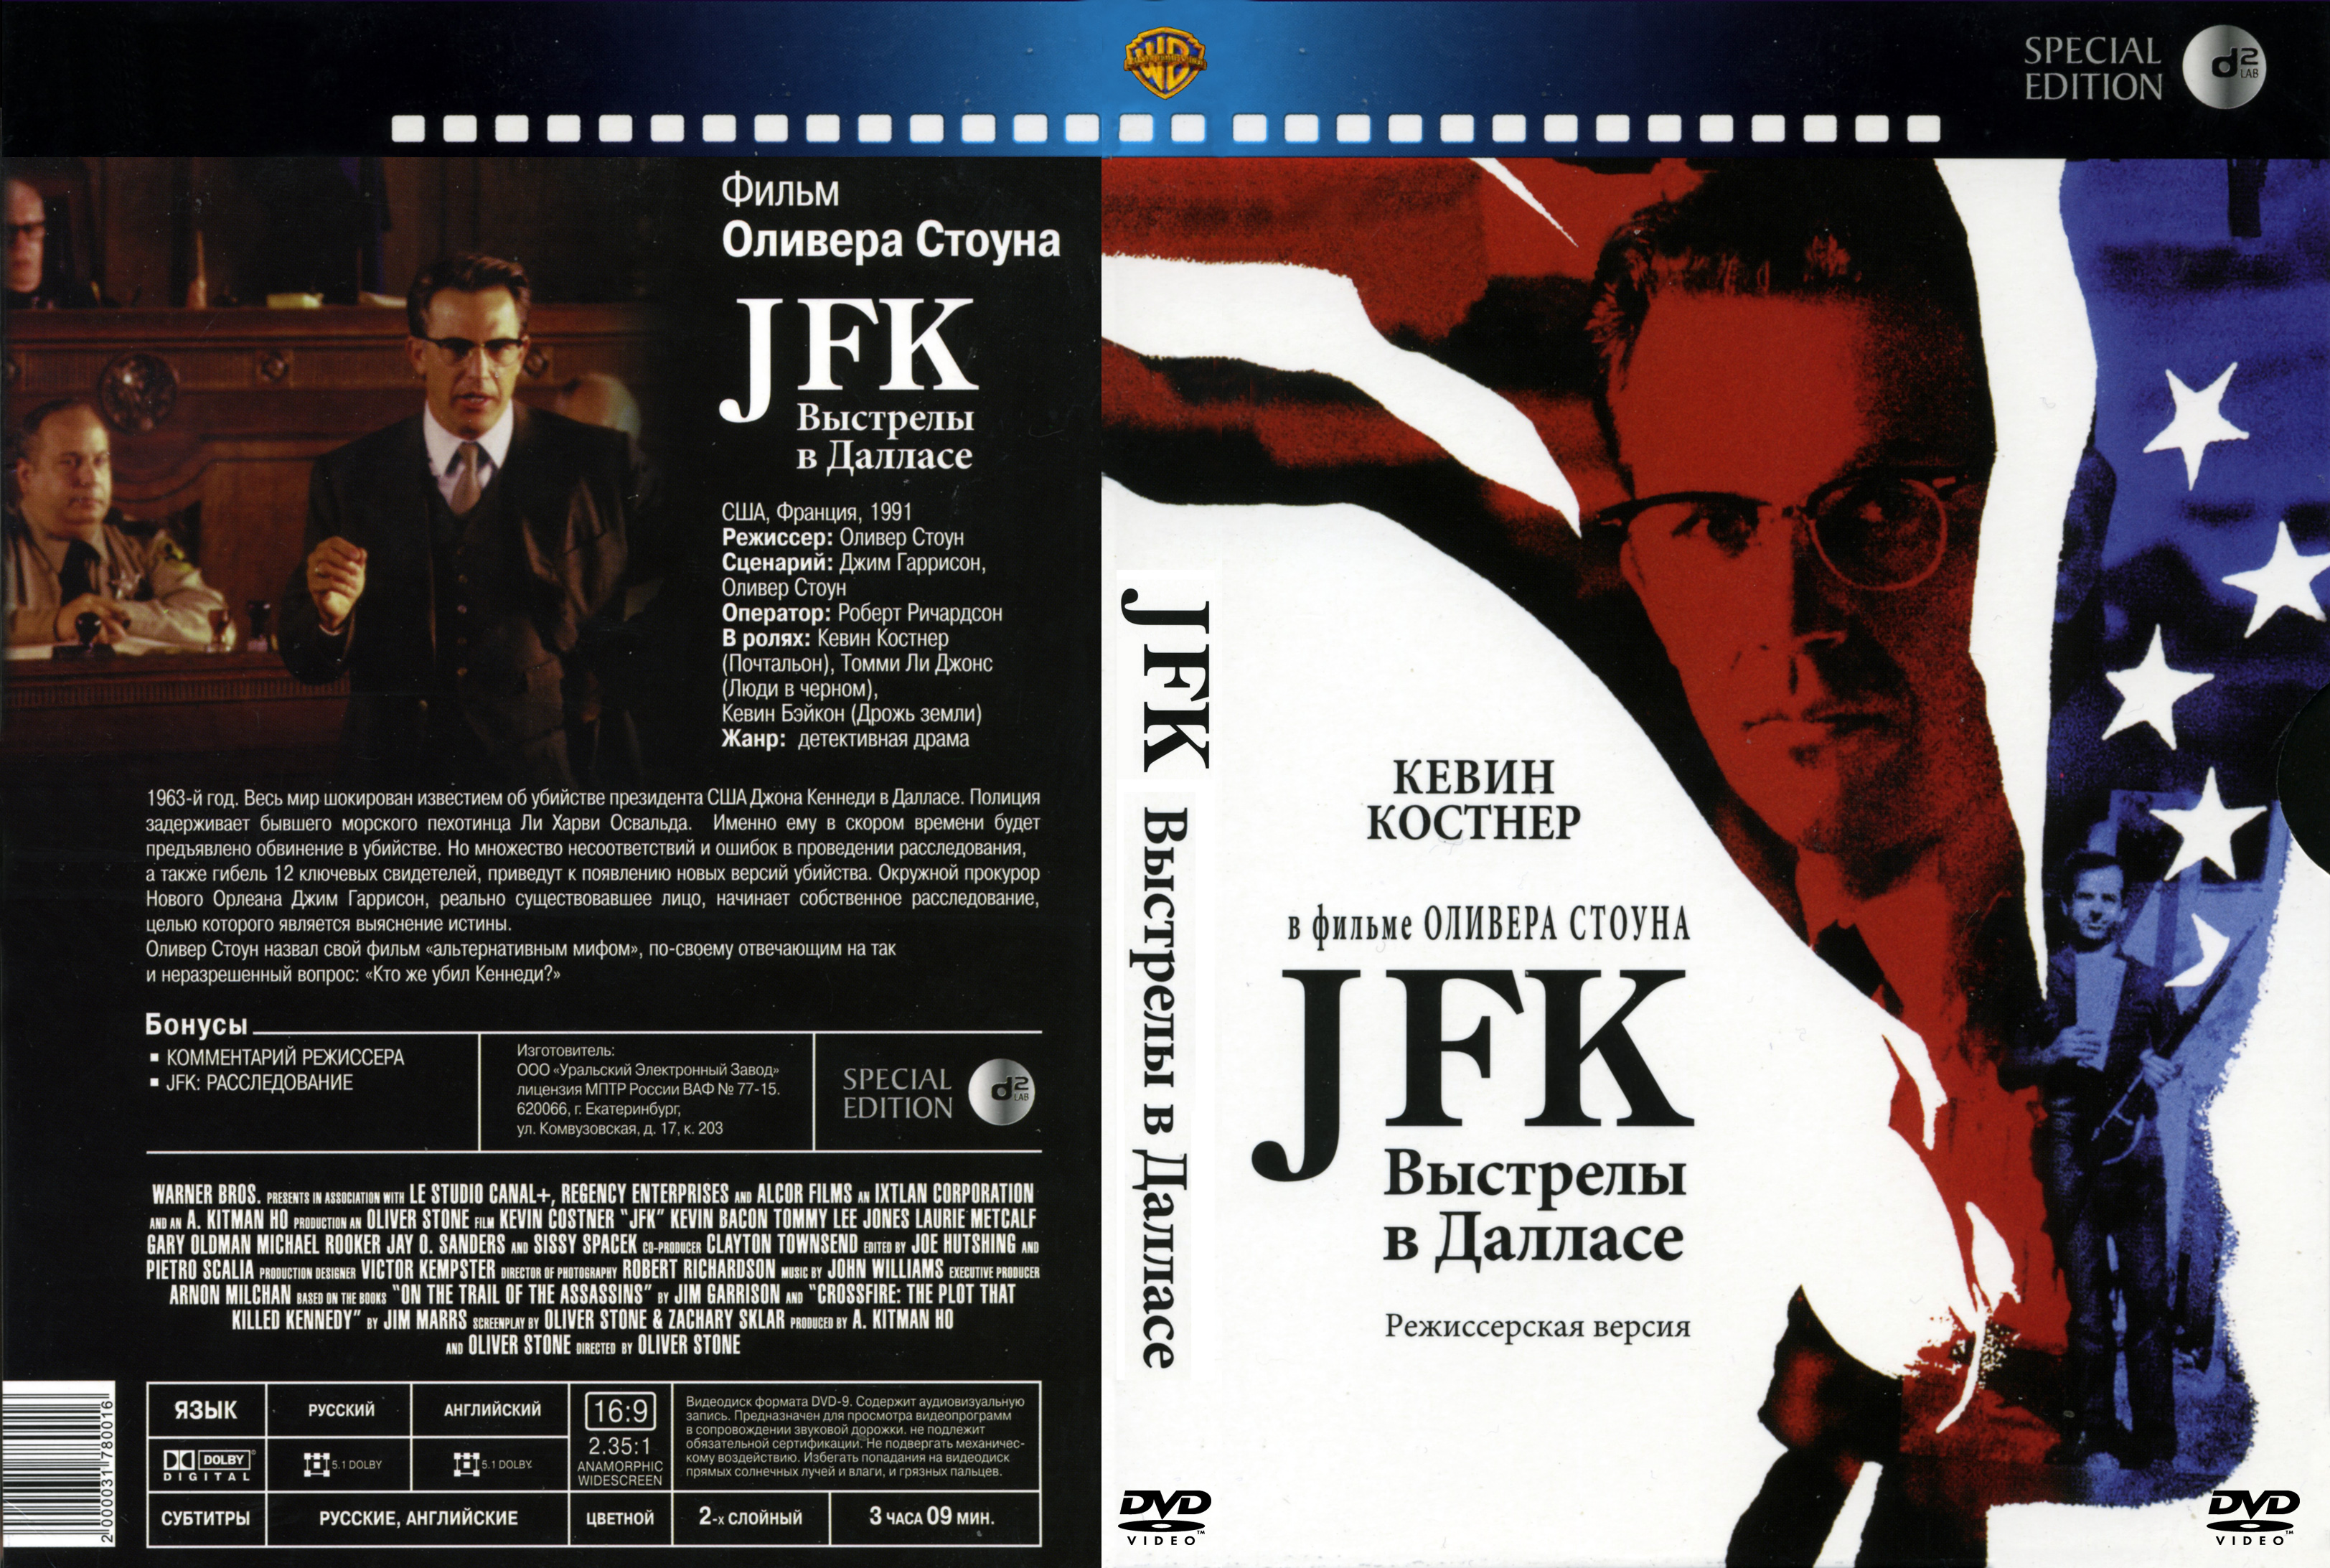 a review of the 1991 movie jfk by oliver stone This could have been a classic movie, but oliver stone took history and distorted it in order to make a movie that would  review of jfk (1991.